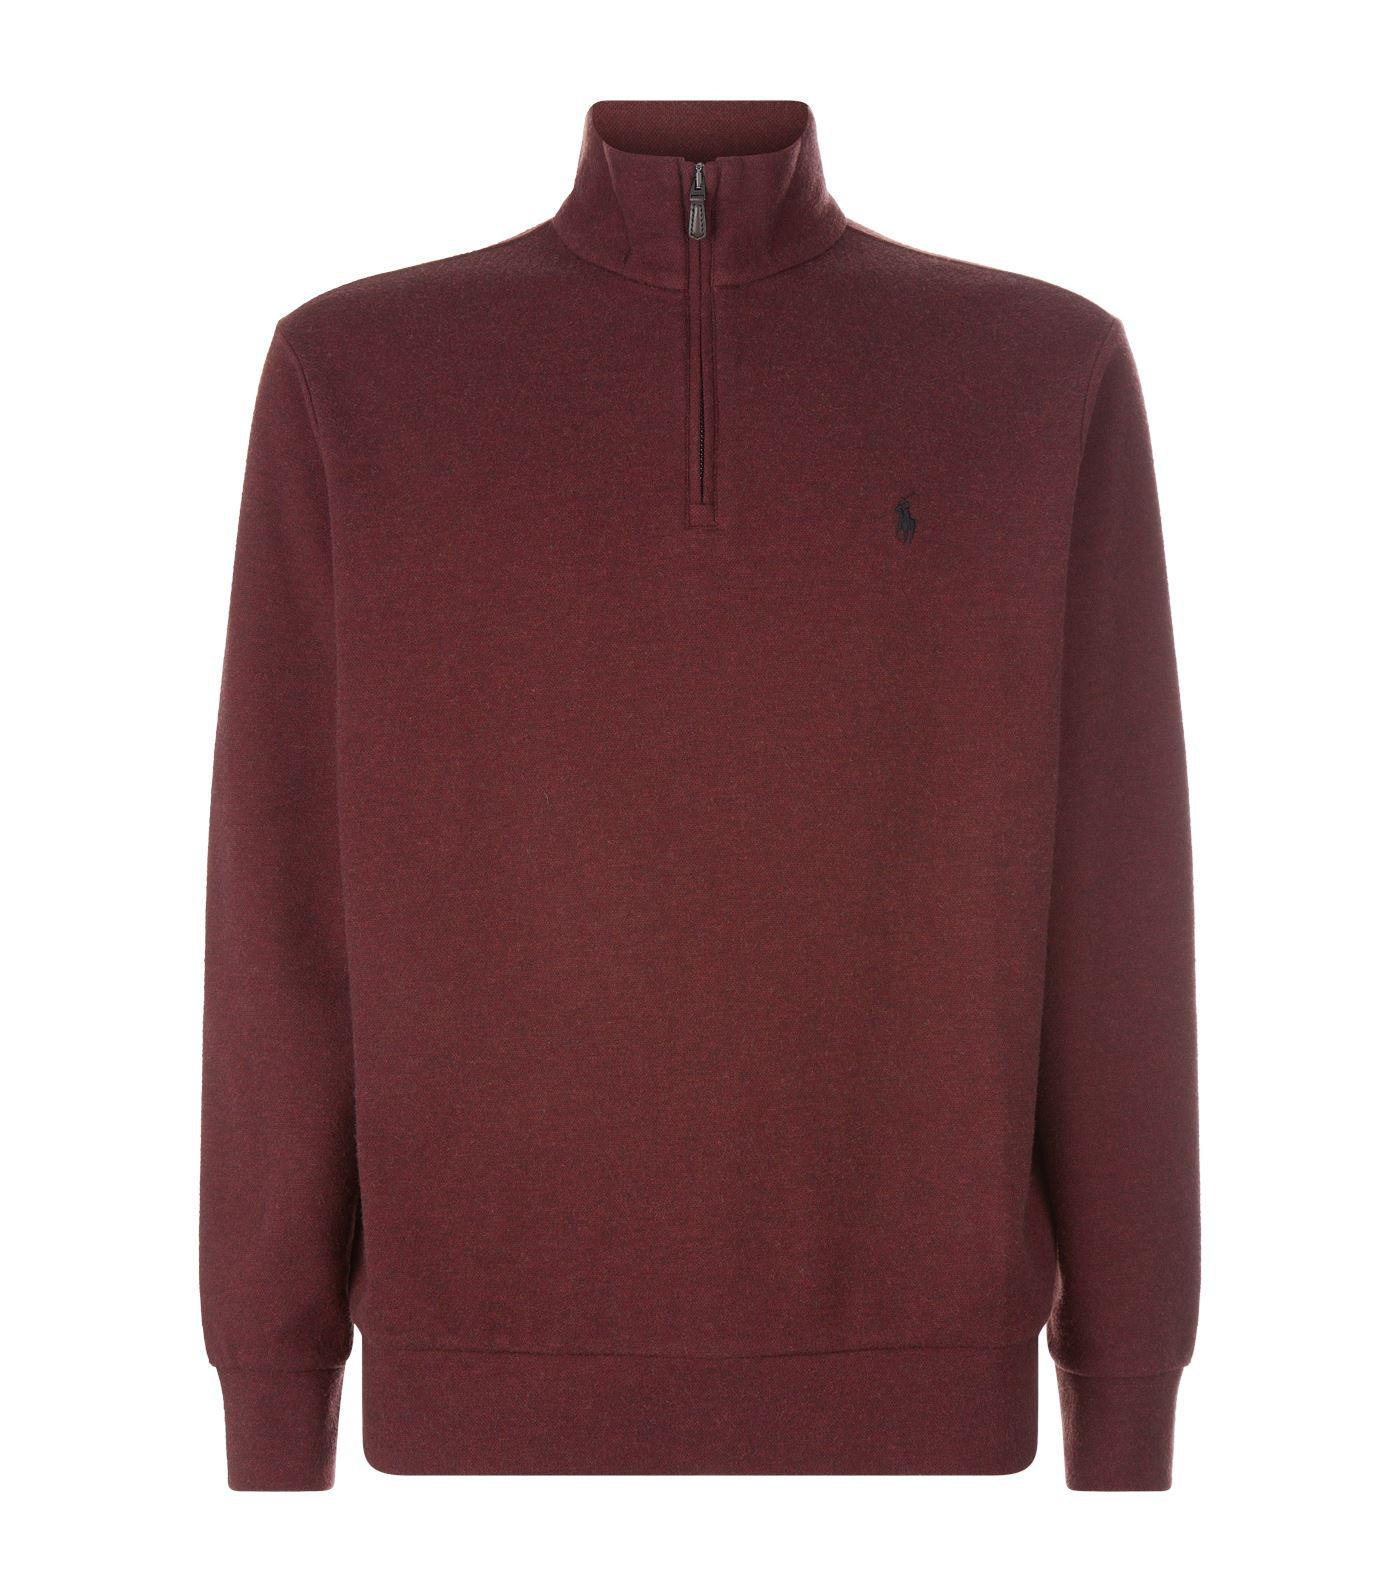 8efda62ab28fd Polo Ralph Lauren Half Zip Sweater in Red for Men - Lyst